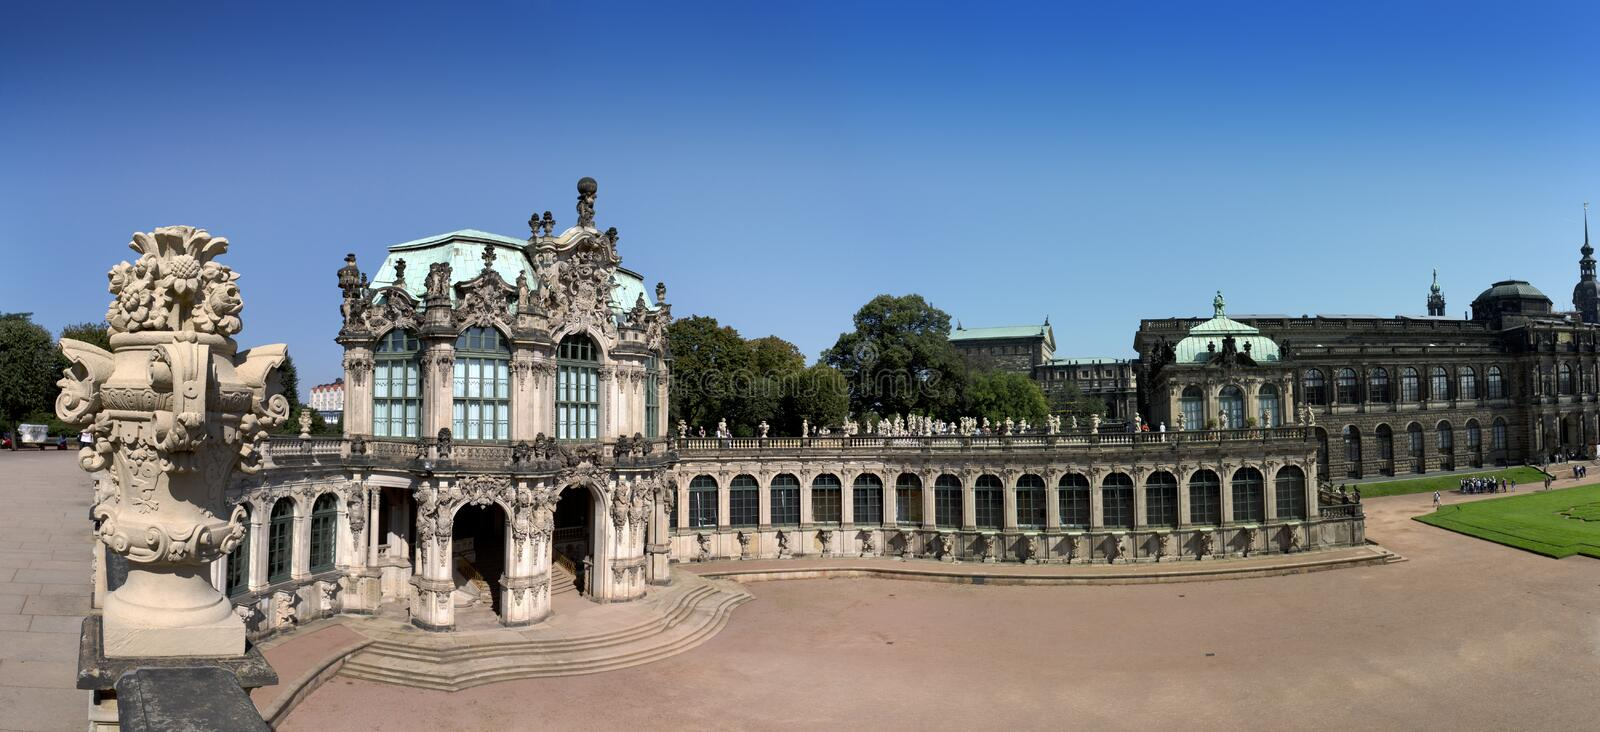 Zwinger palace, XVIII century - famous historic building in Dresden stock photos